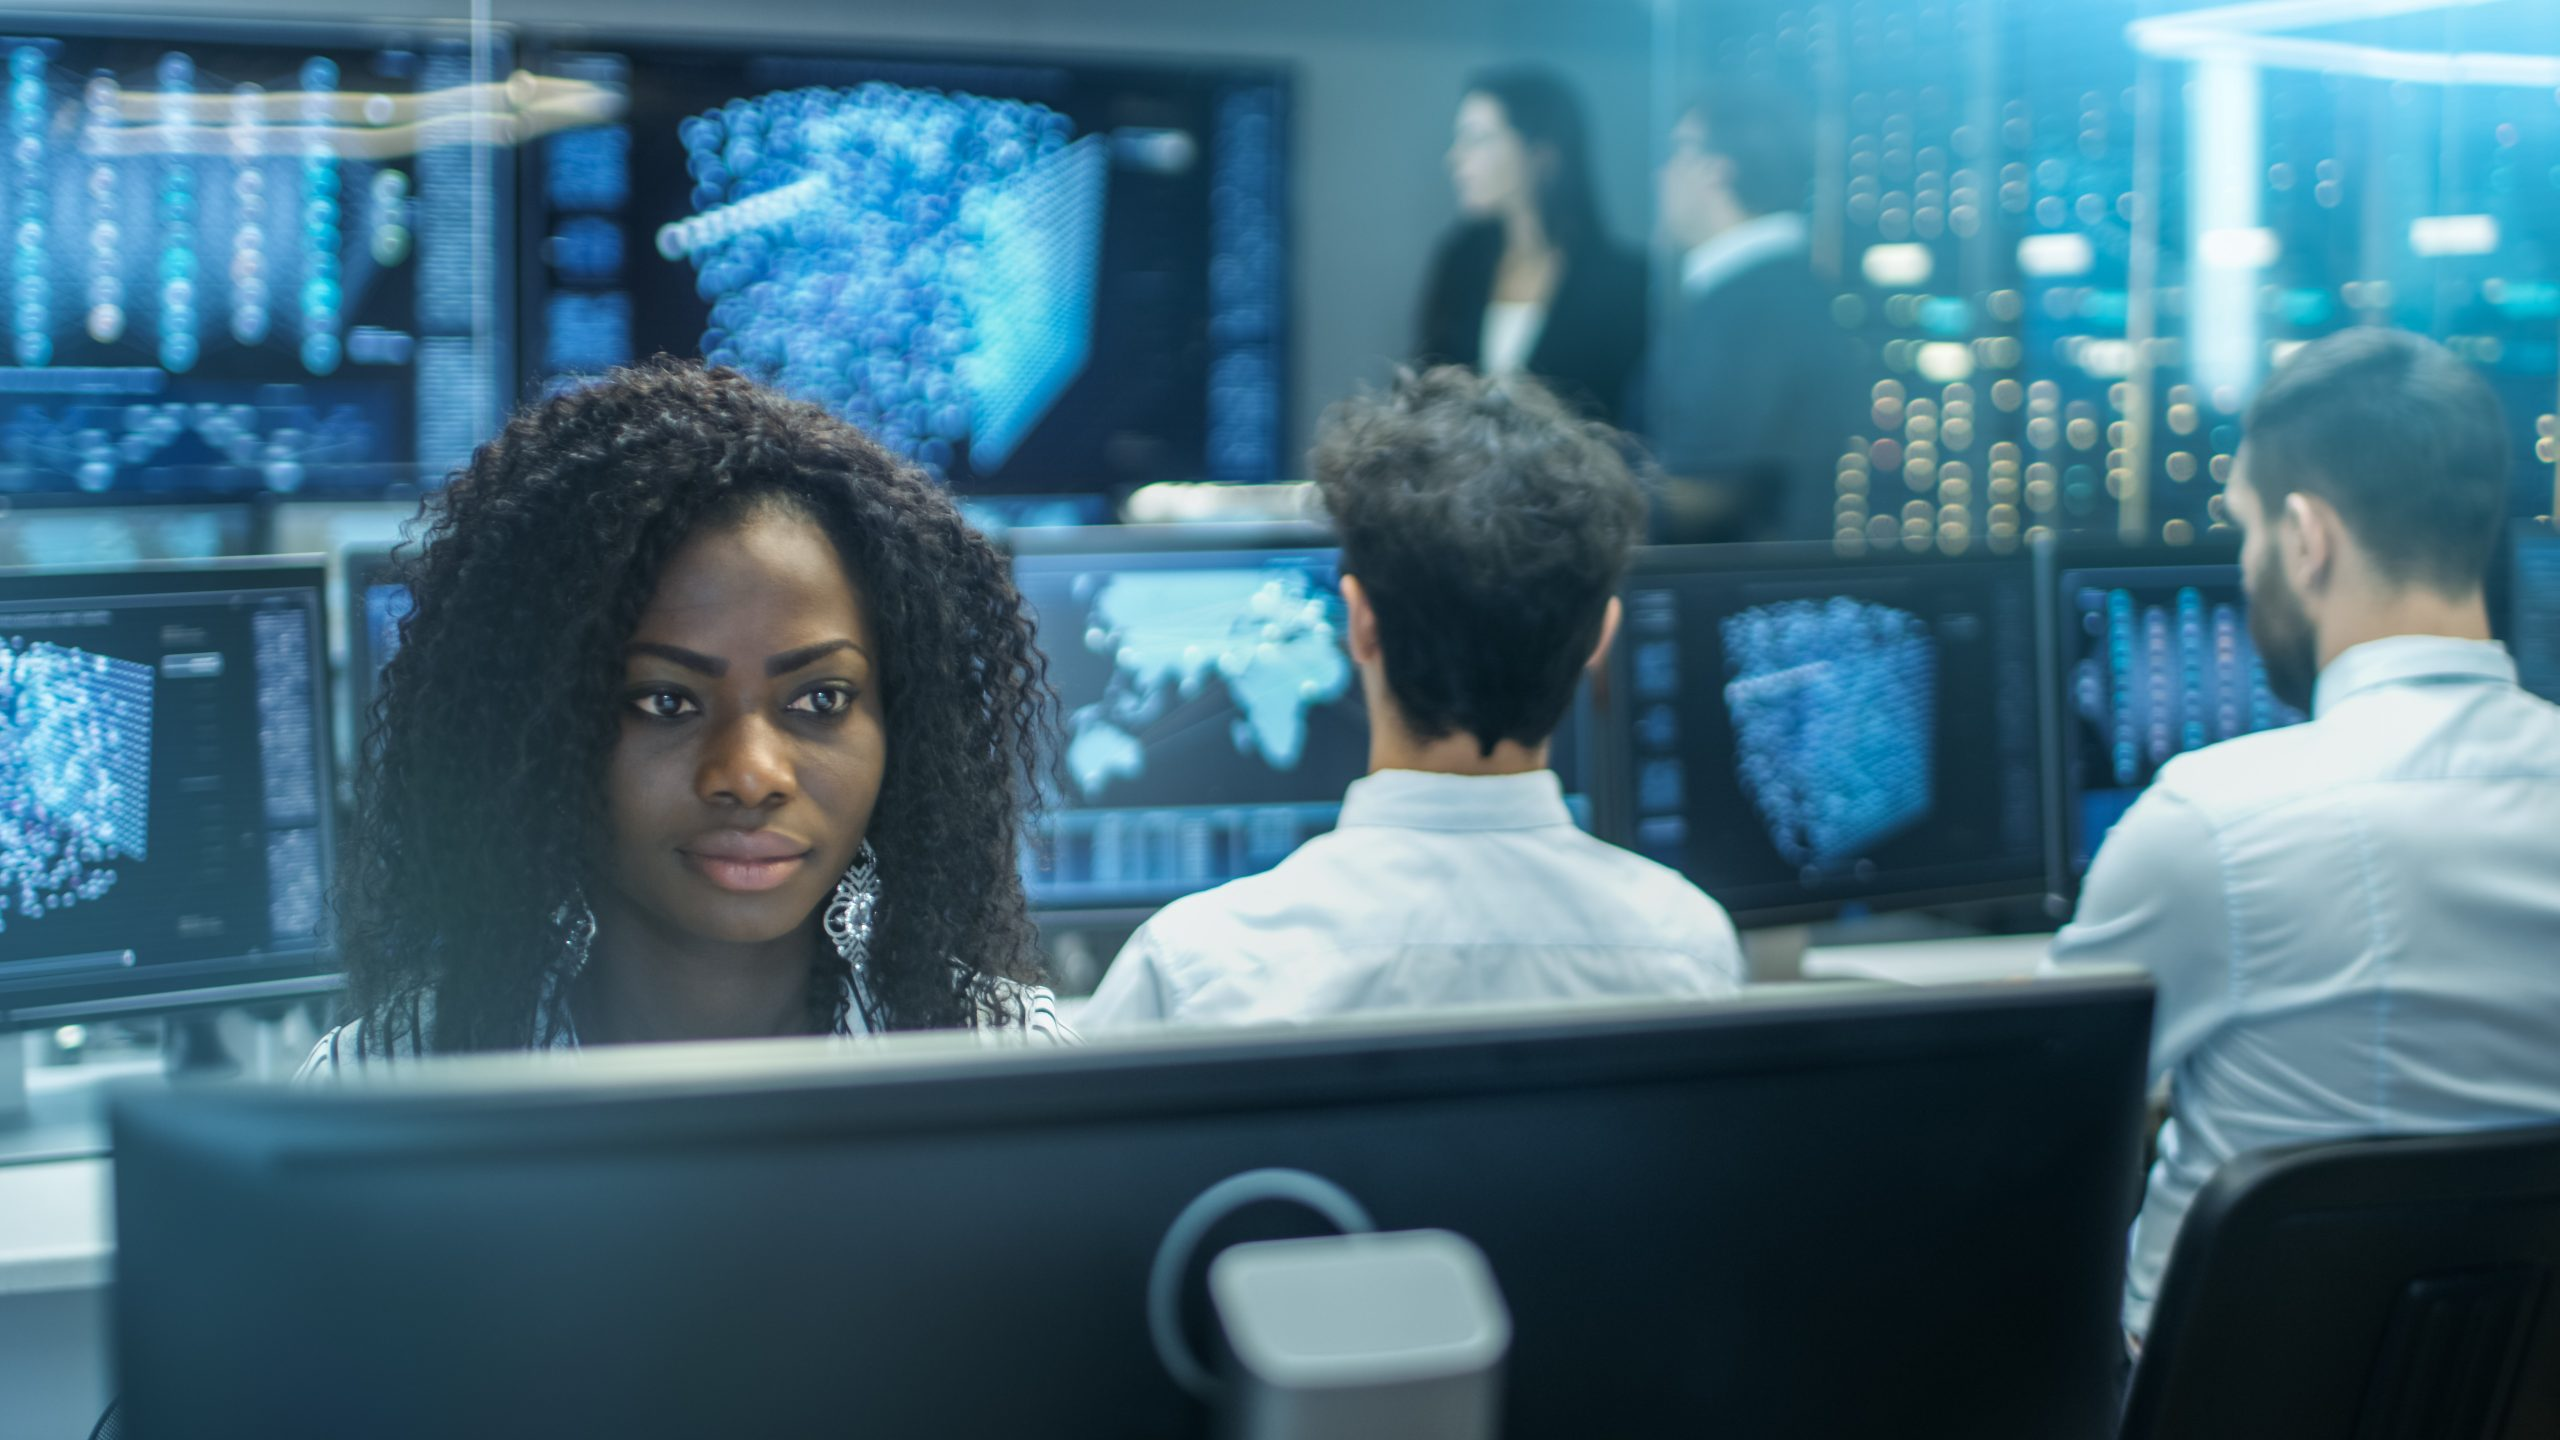 Cybersecurity Youth Apprenticeship Initiative (CYAI) to partner with Clark U.'s Tech Quest Apprenticeship initiative to train tech workers